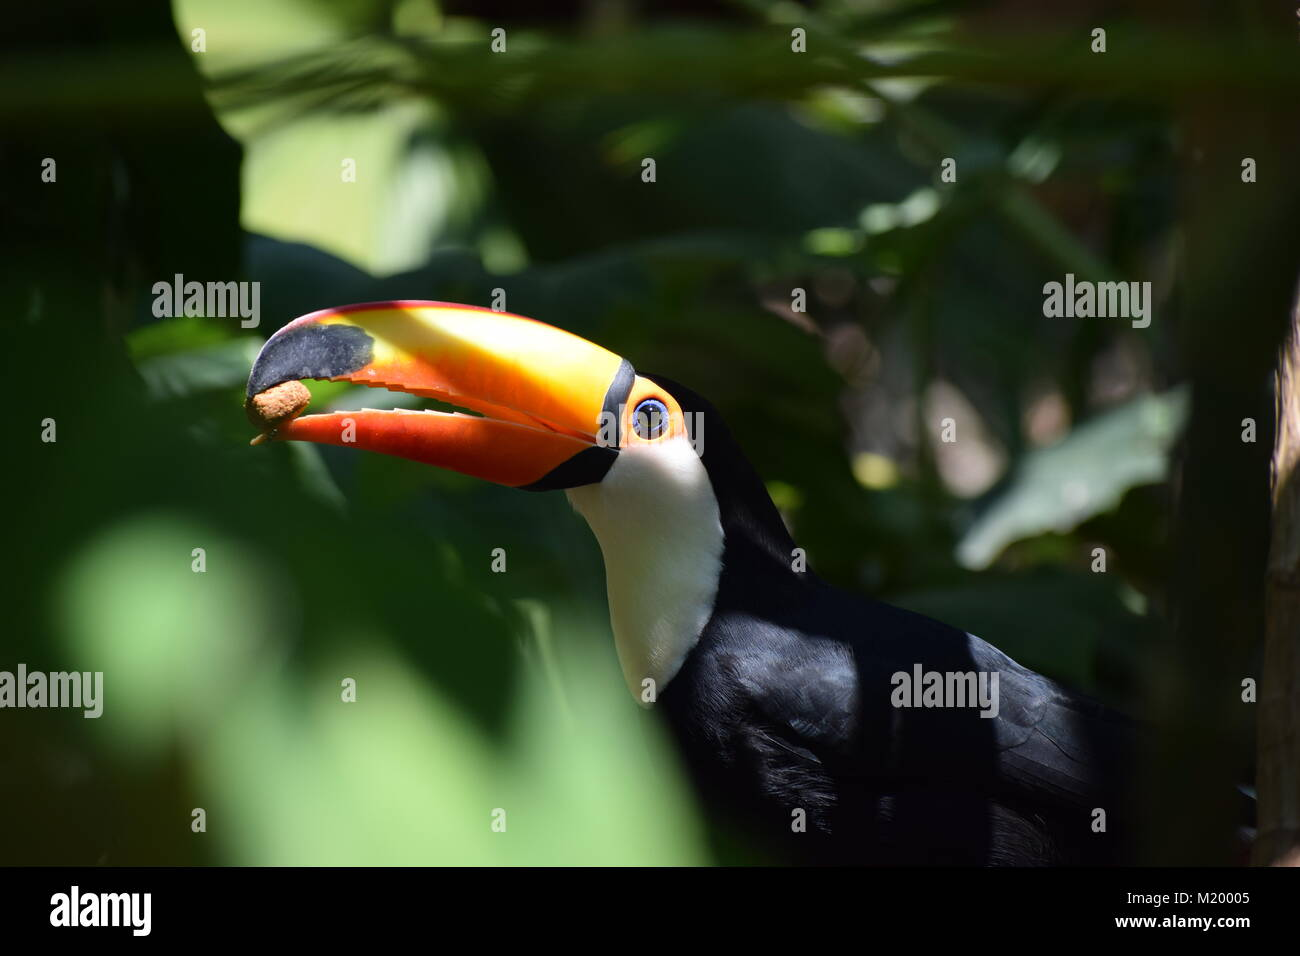 Giant toucan (Ramphastos toco) in the forest, exotic south american bird - Stock Image